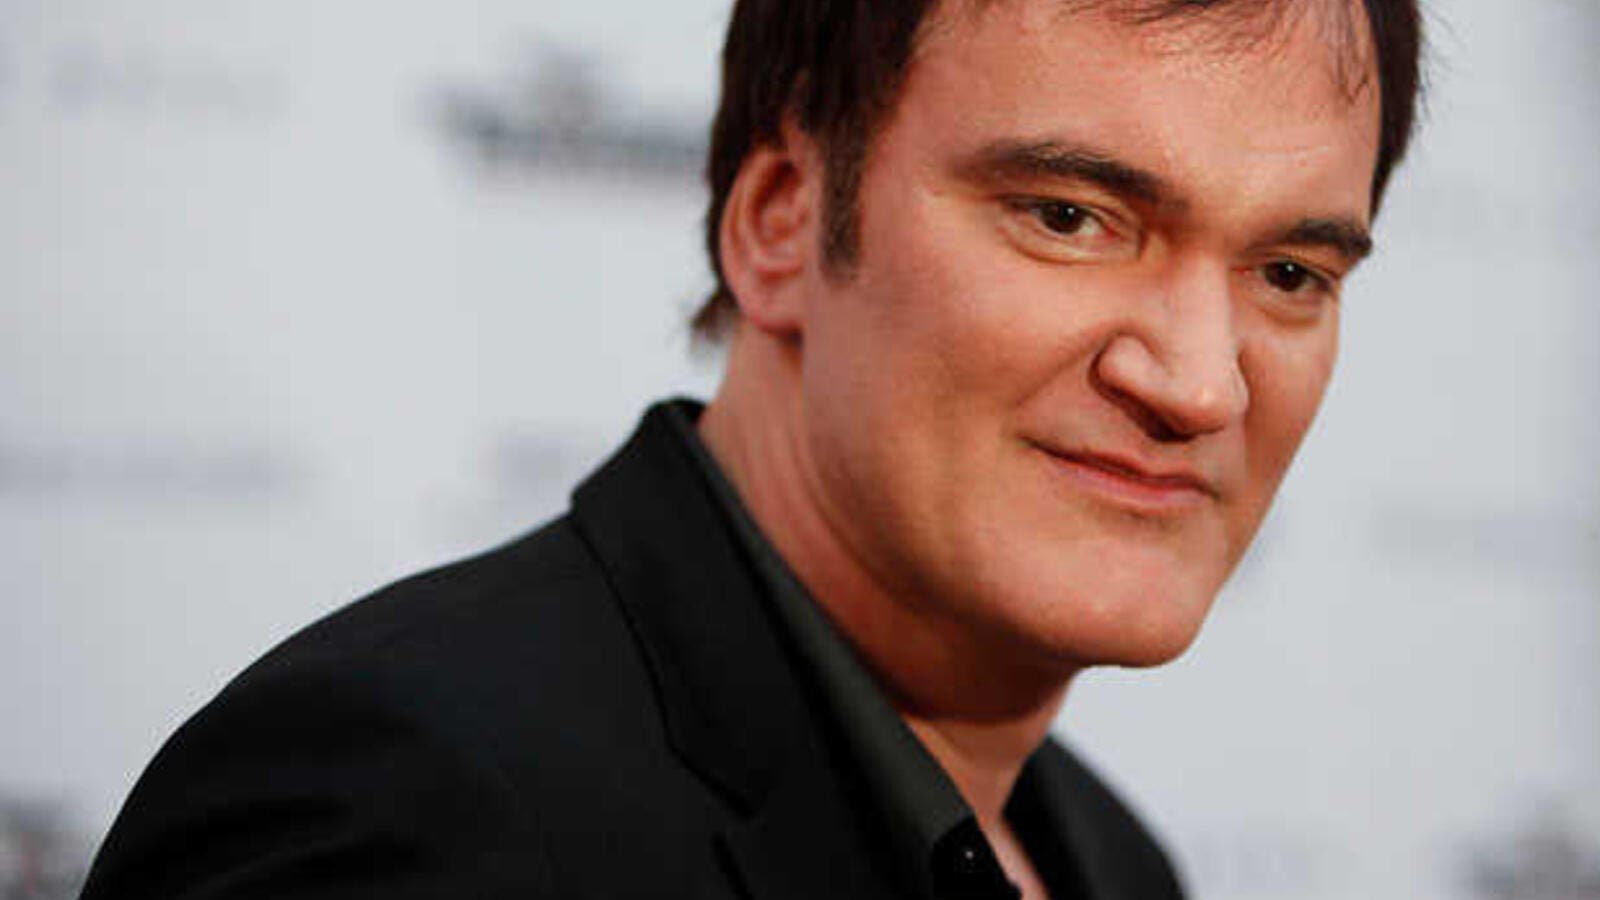 Tarantino, who last visited Israel to promote his 2009 film, Inglourious Basterds, is one of a great number of exciting guests who will take part in this year's festival. (movies.com)